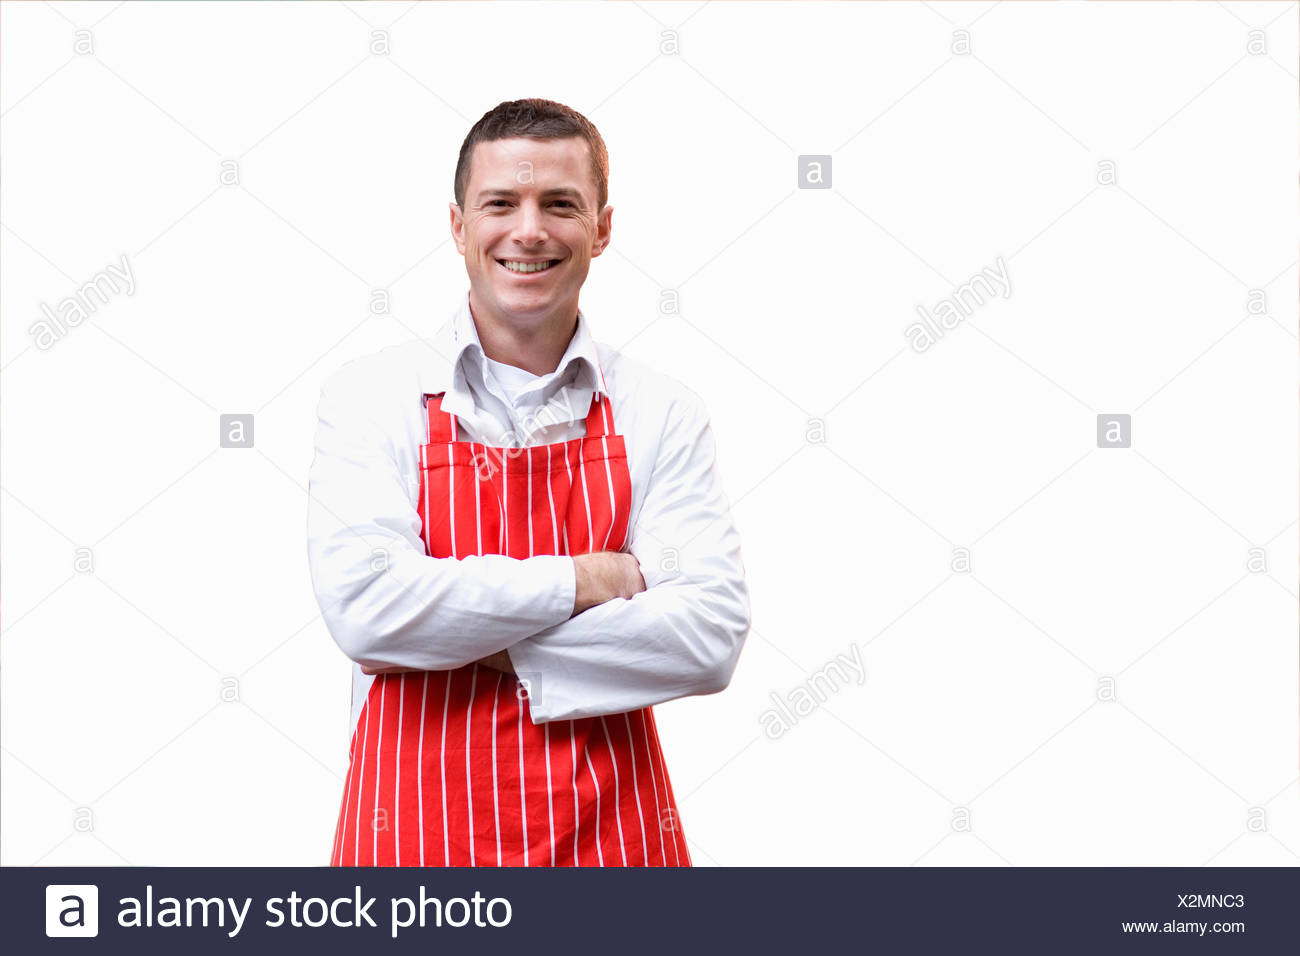 Smiling butcher in apron with arms crossed - Stock Image